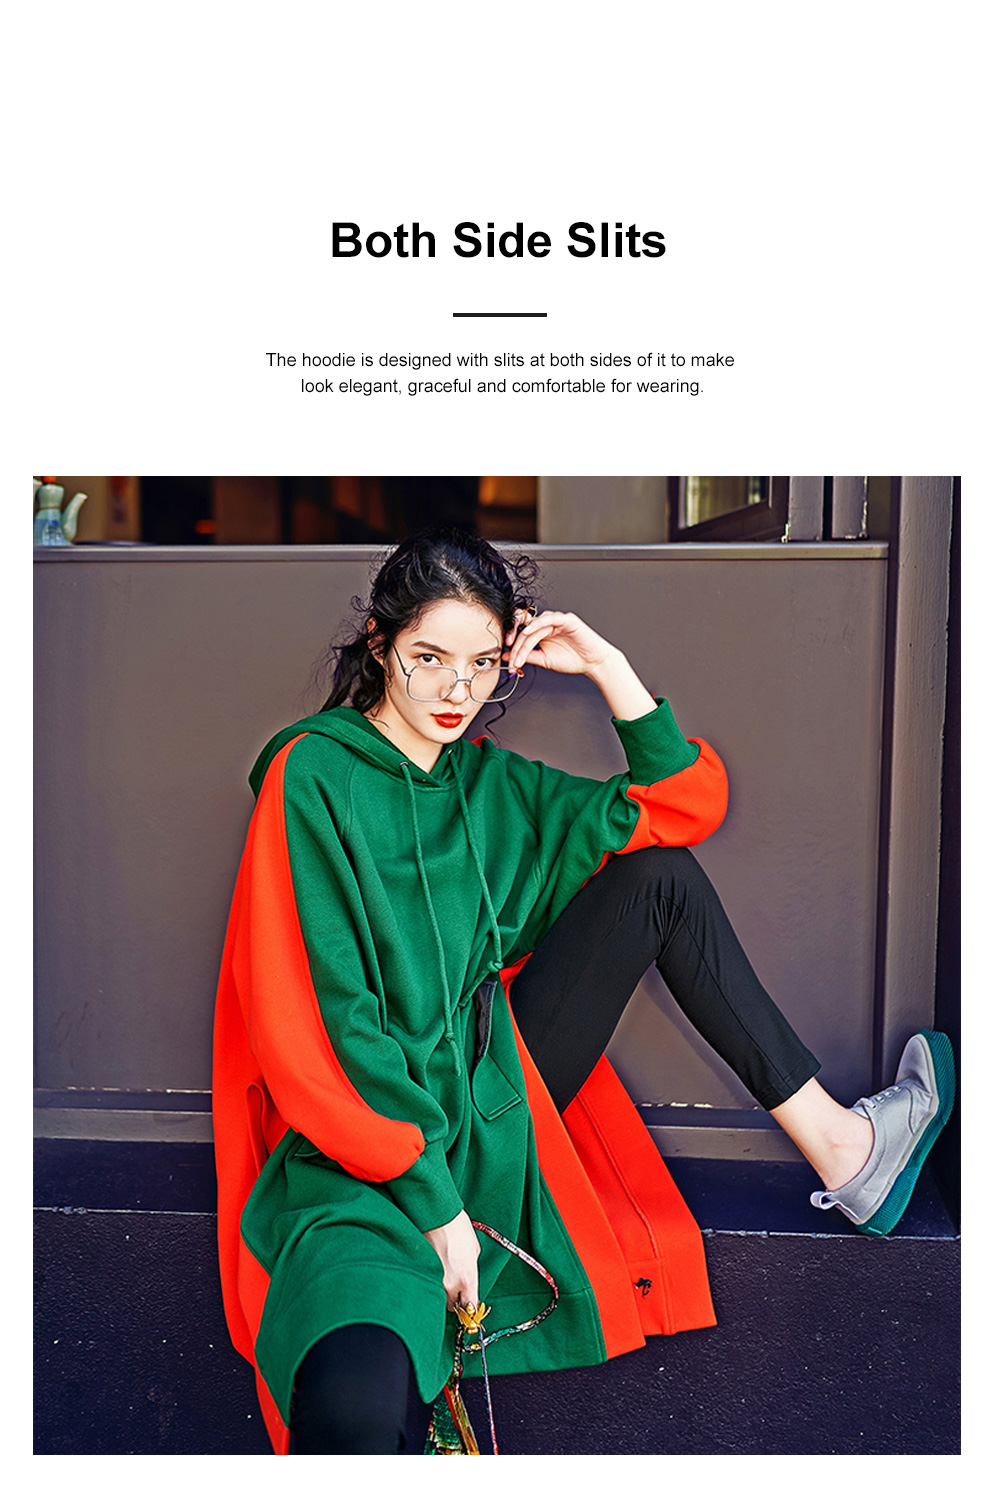 Stitching Color Hoodie Loose Style Hoodie for Women Fashionable Cotton Overcoat Spring Autumn 2019 1